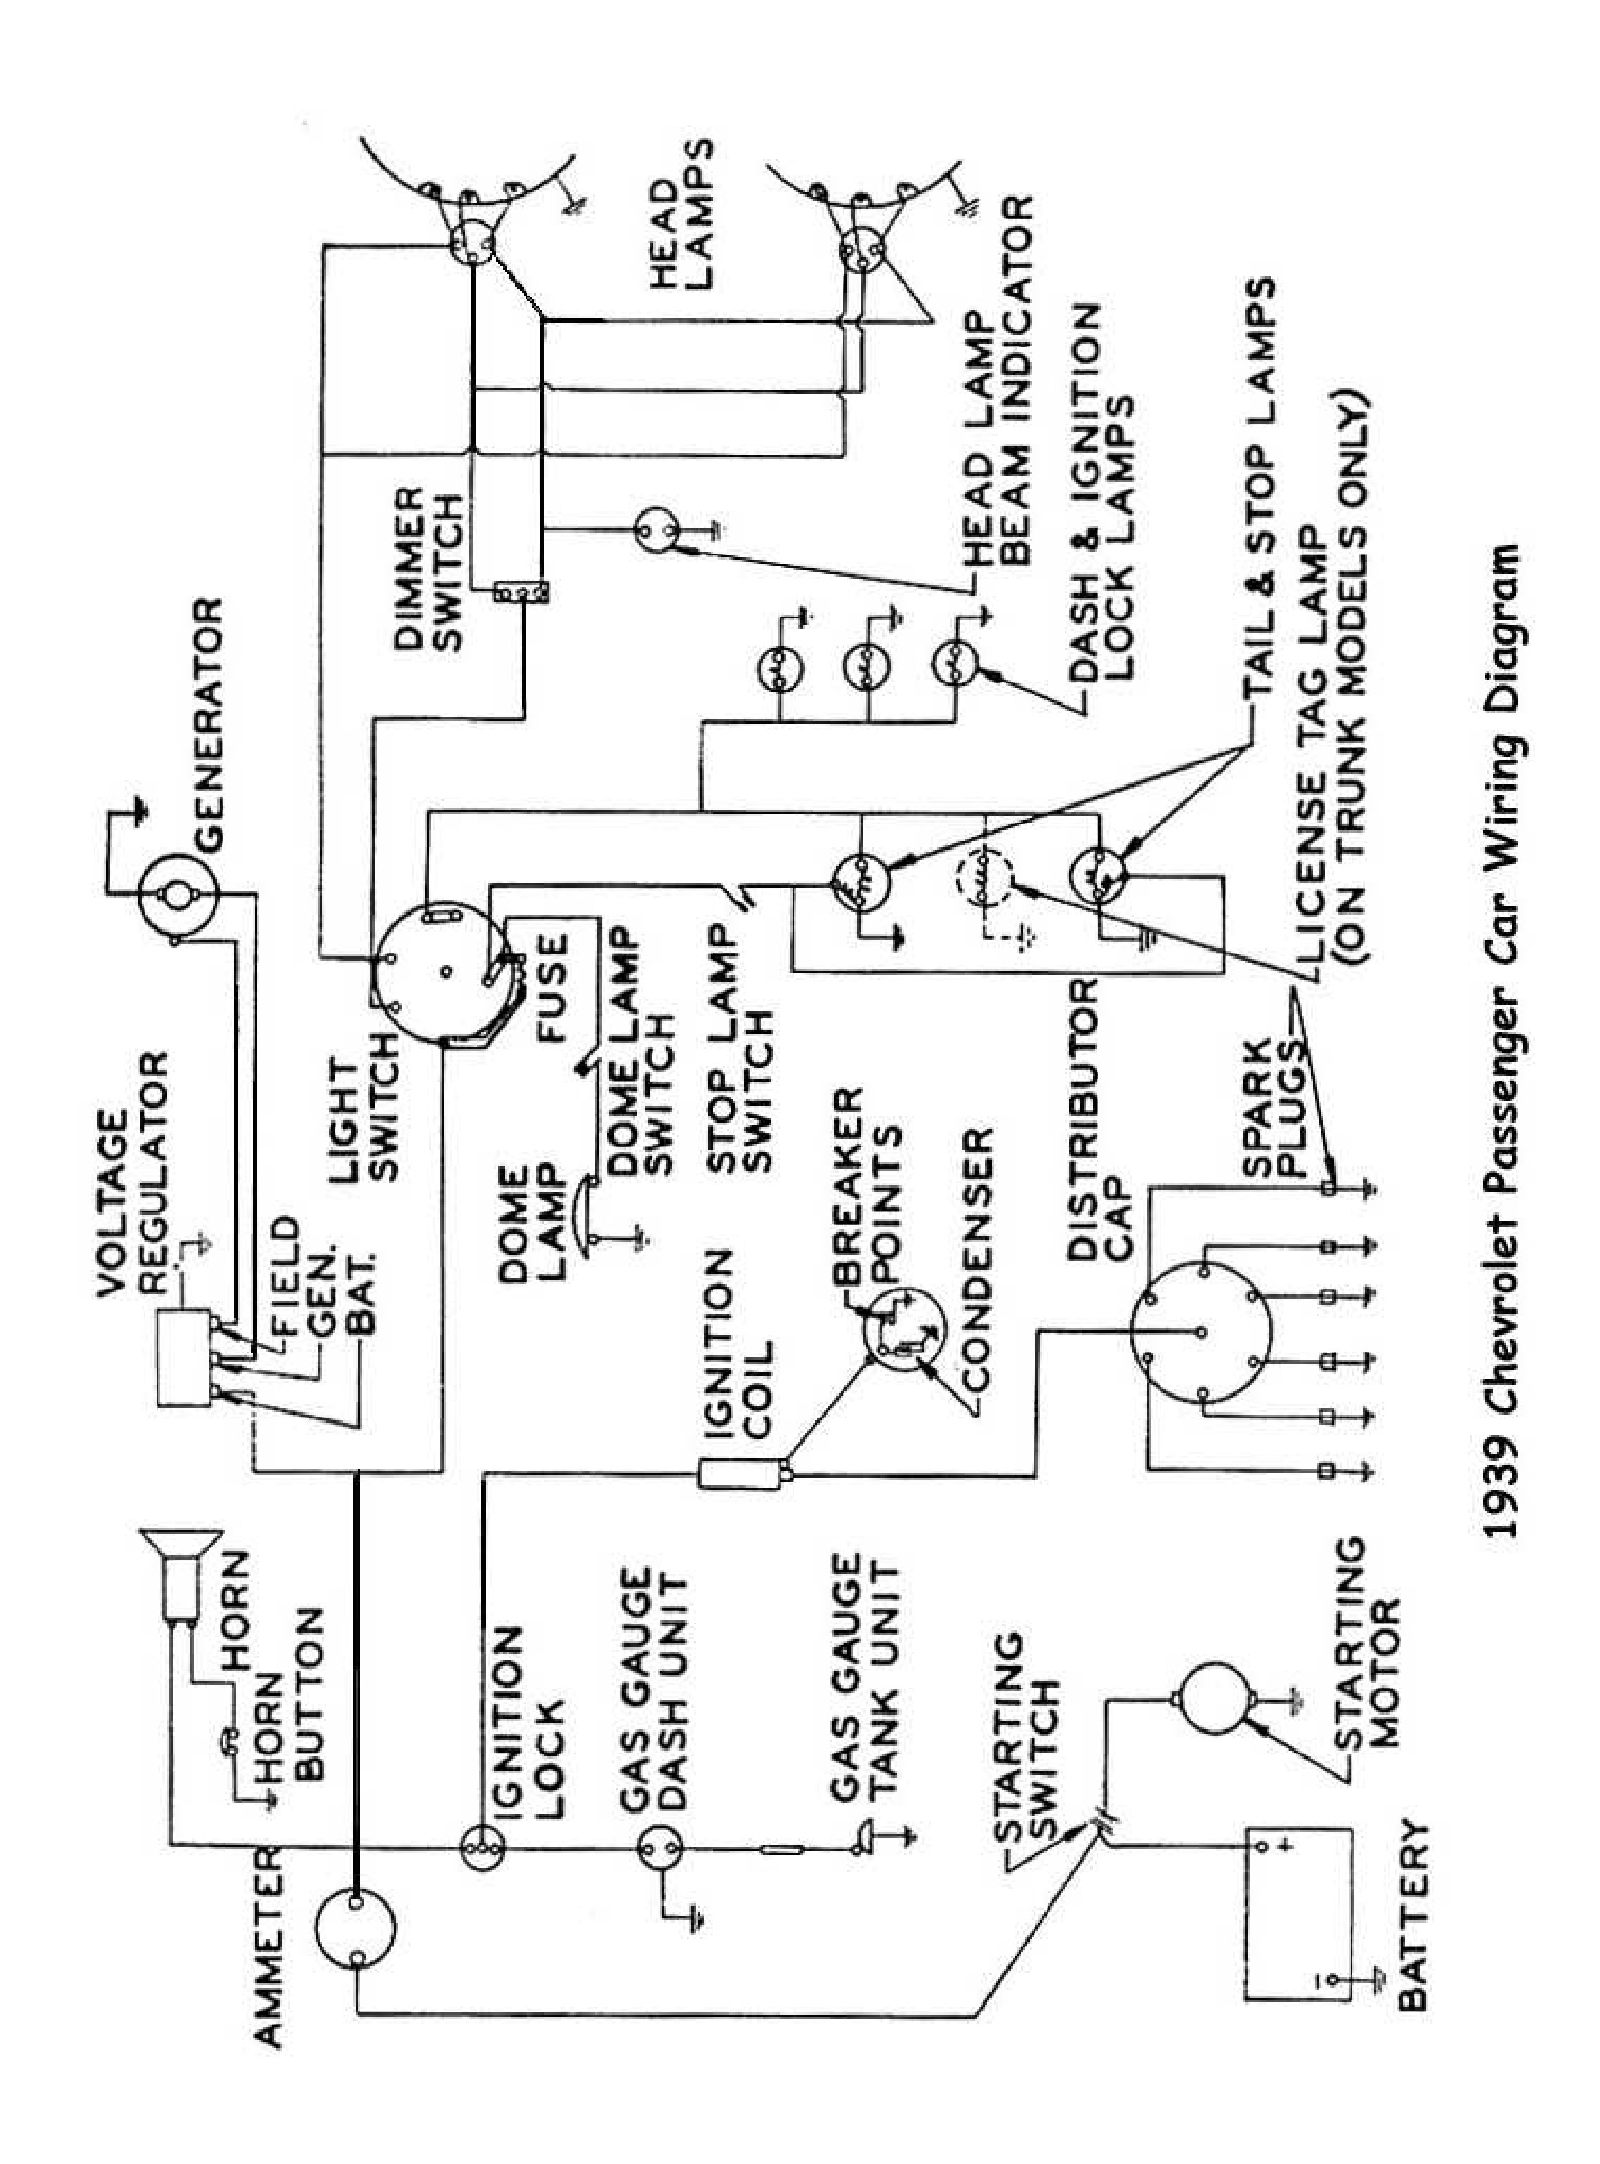 39car chevy wiring diagrams Basic Engine Wiring Diagram Chevy at edmiracle.co